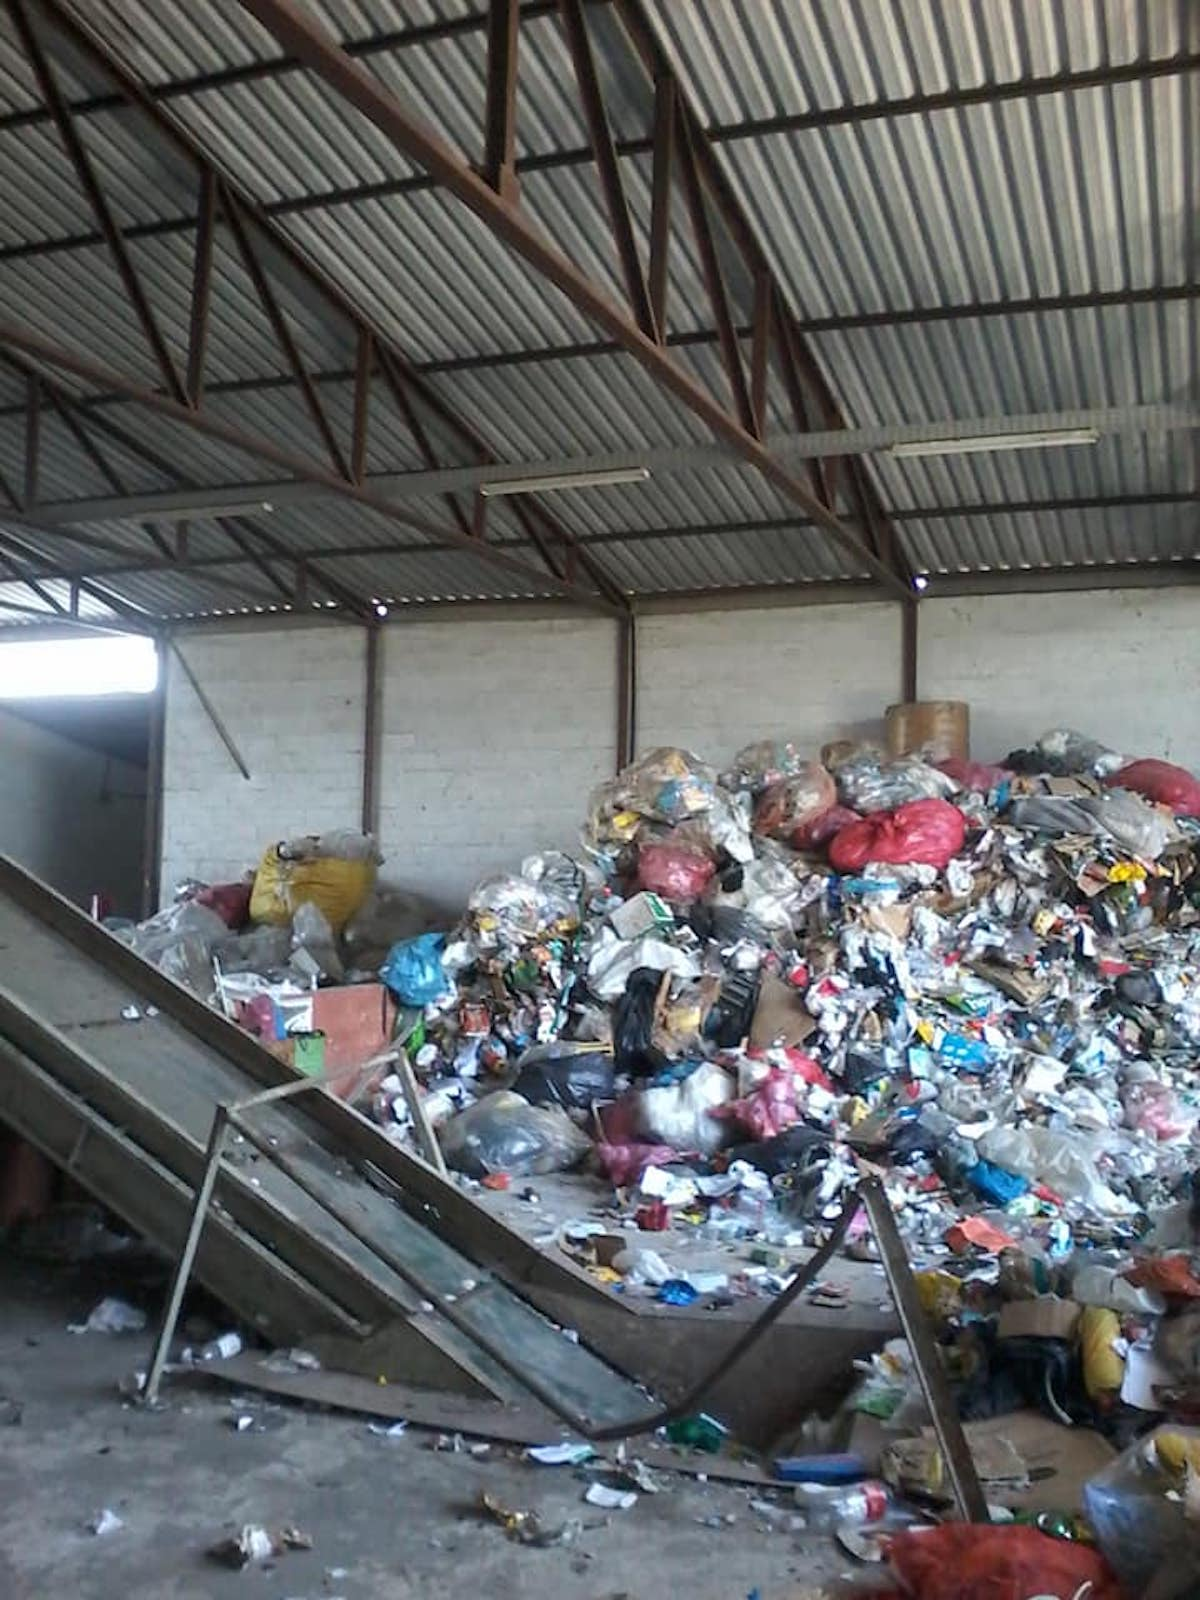 Brazil's National Solid Waste Policy and its Inadequacies in